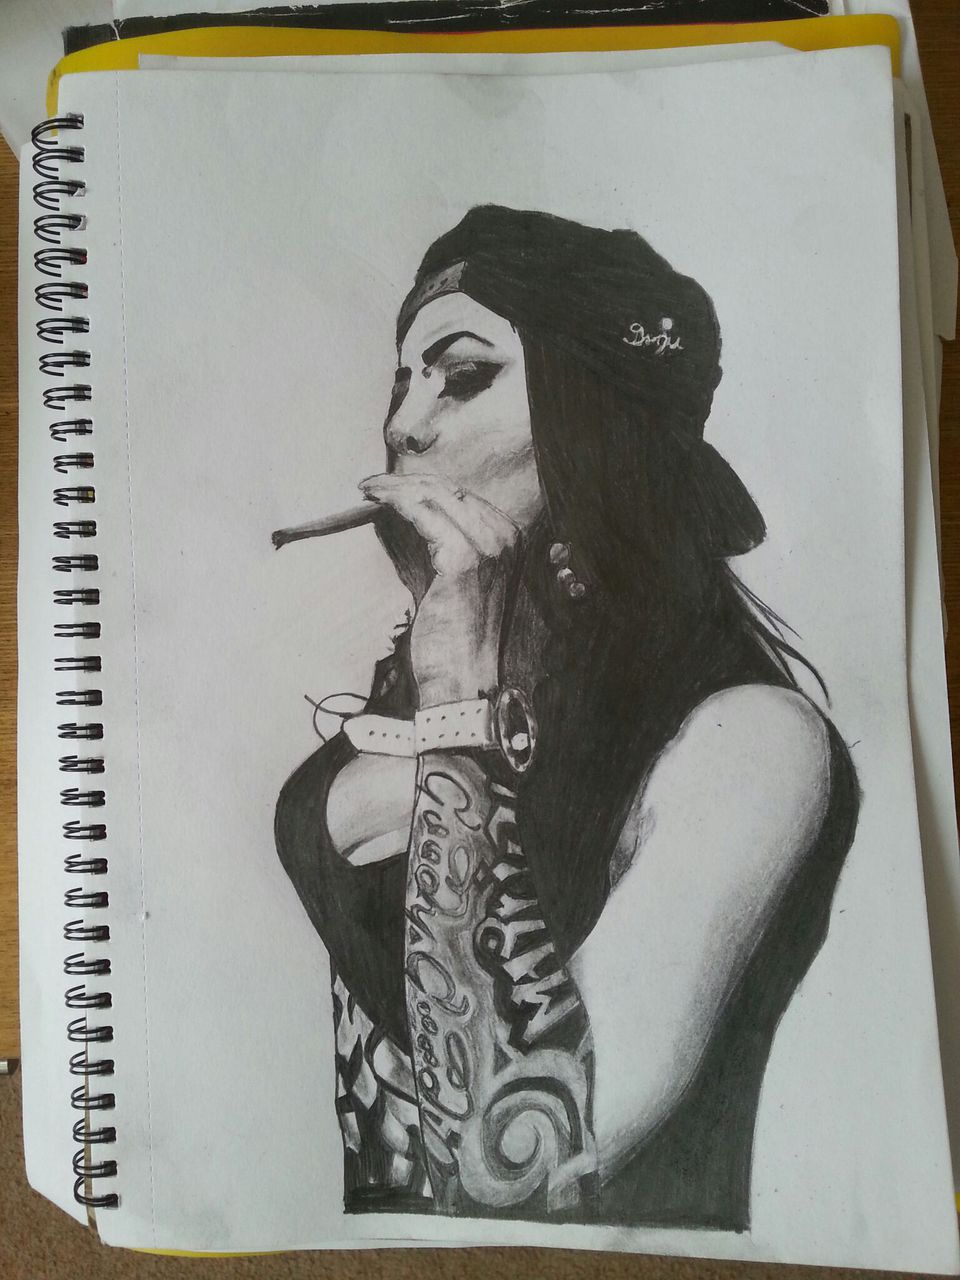 Image of: Character Is This Your First Heart We Heart It Pencil Drawing Gangster Girl Shared By Drugdealergirl